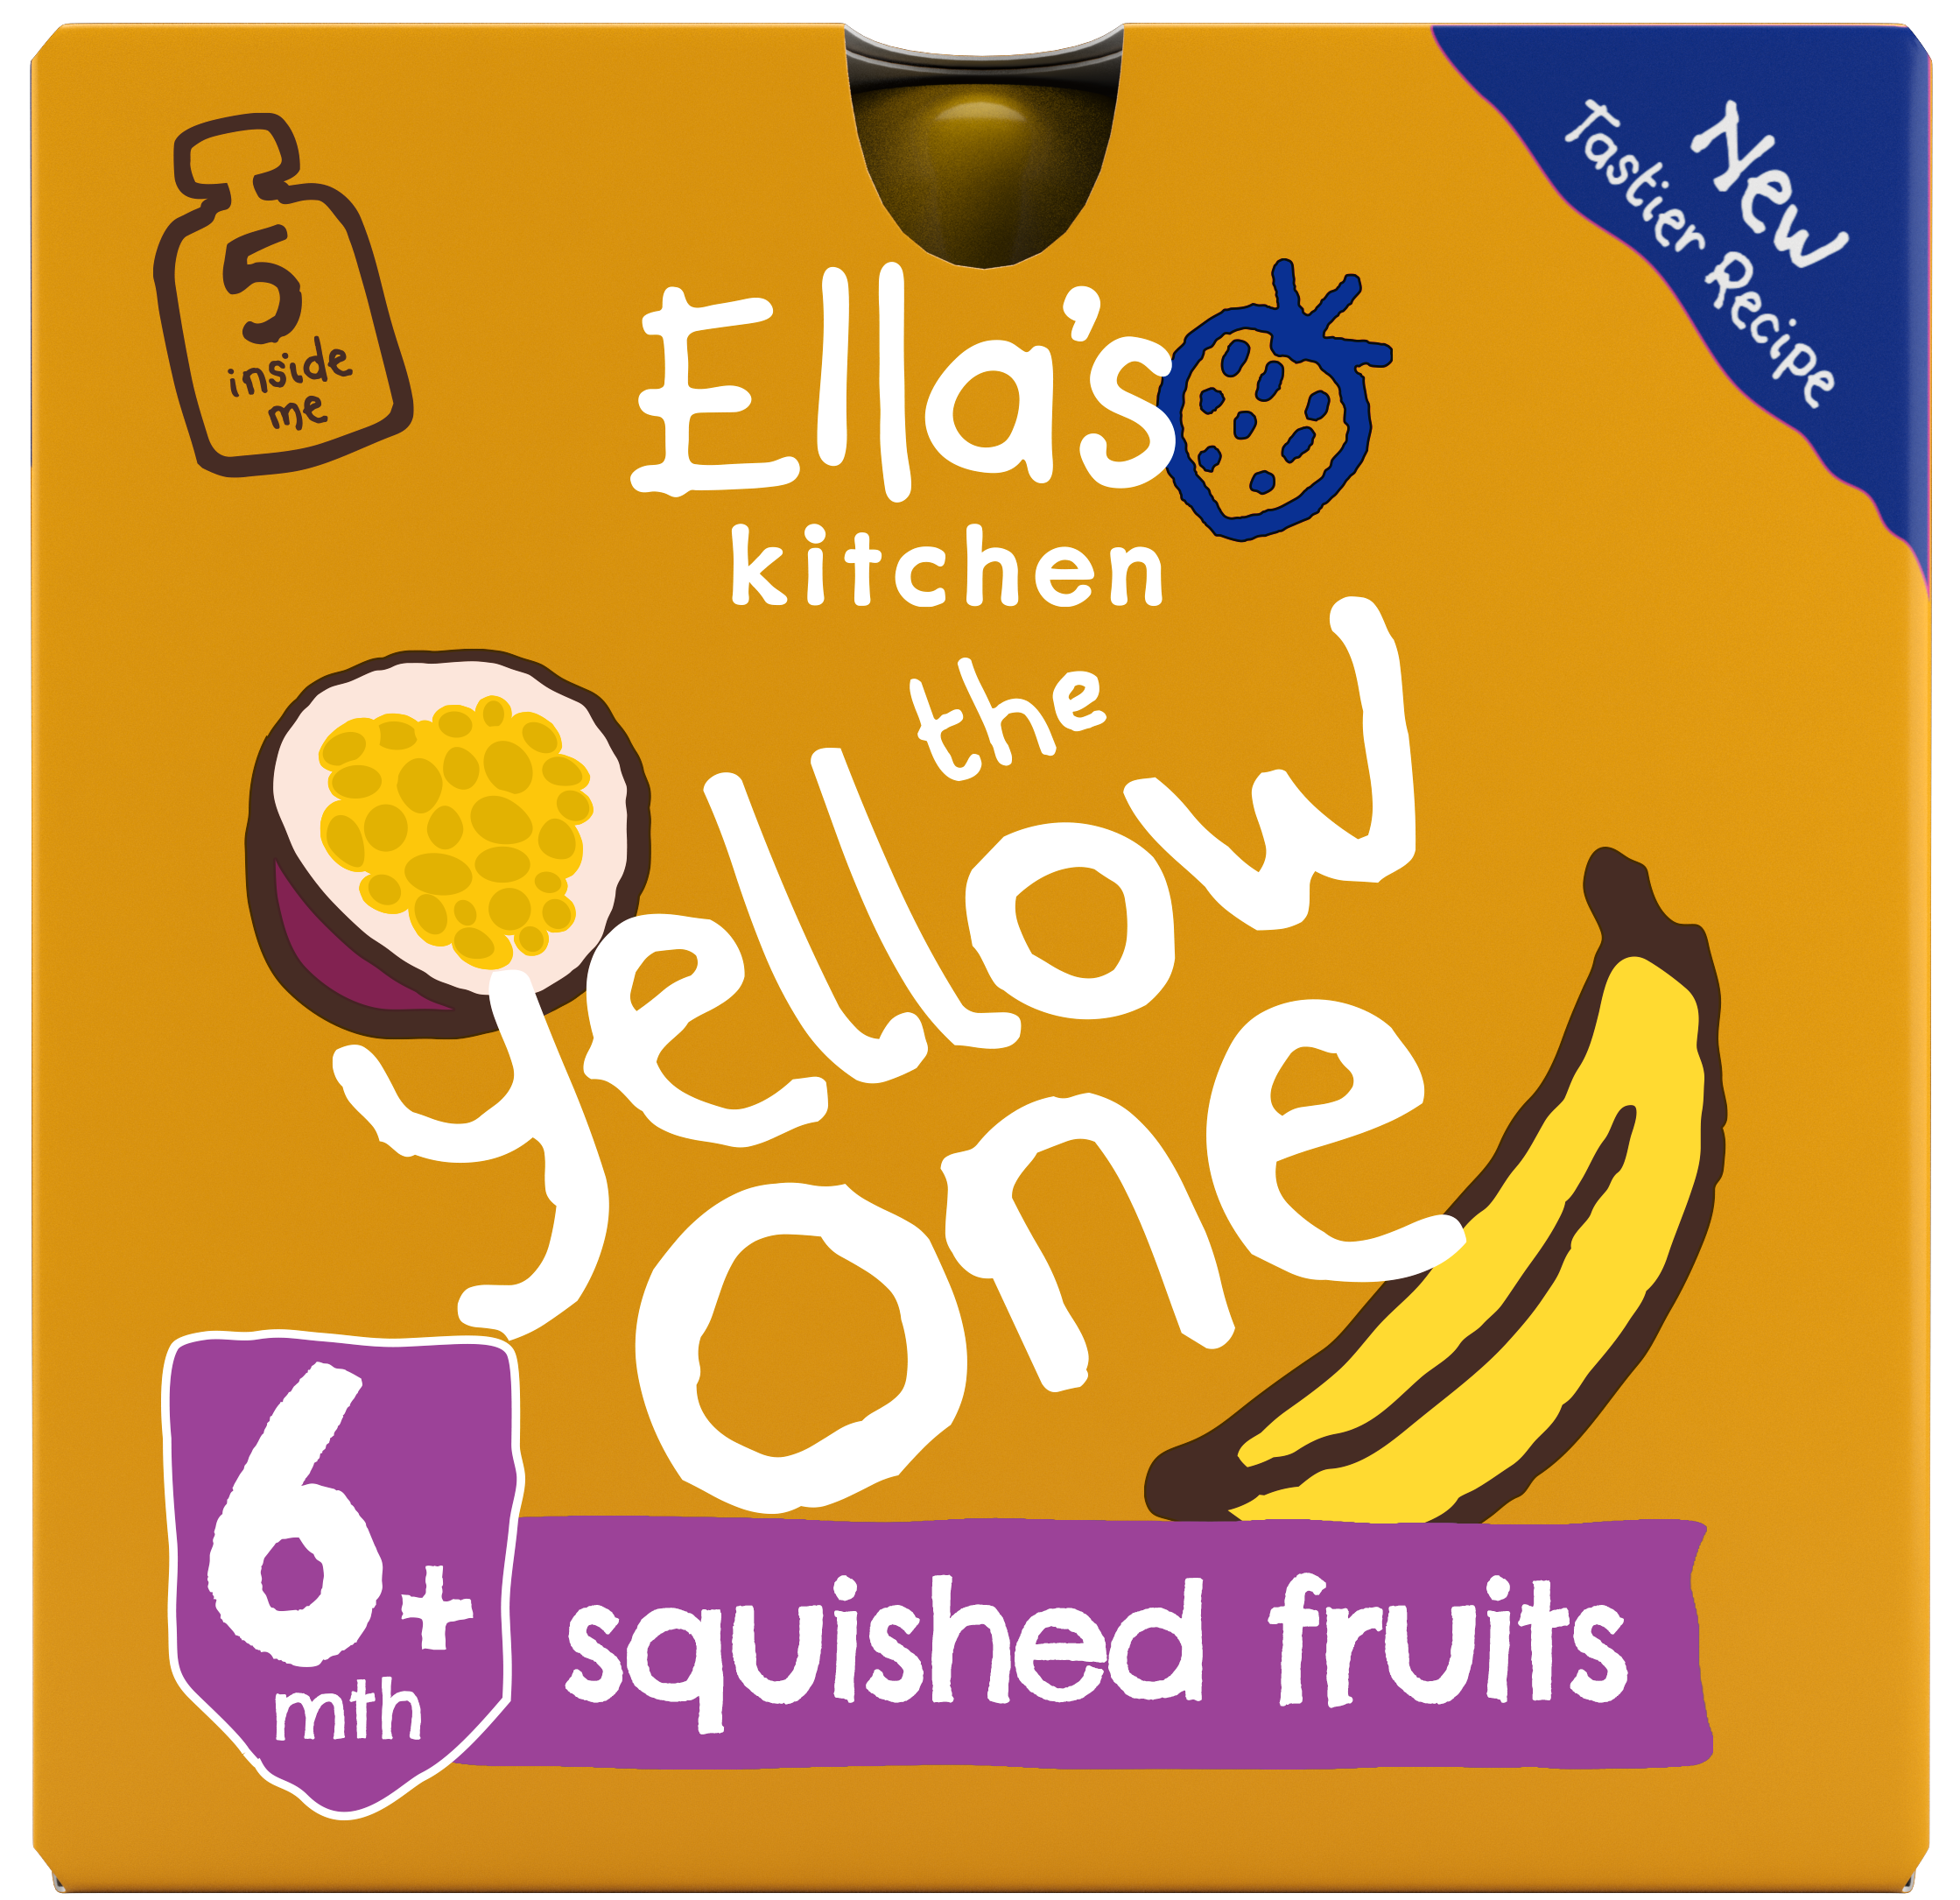 Ellas kitchen the yelloe one smoothie front of pack O